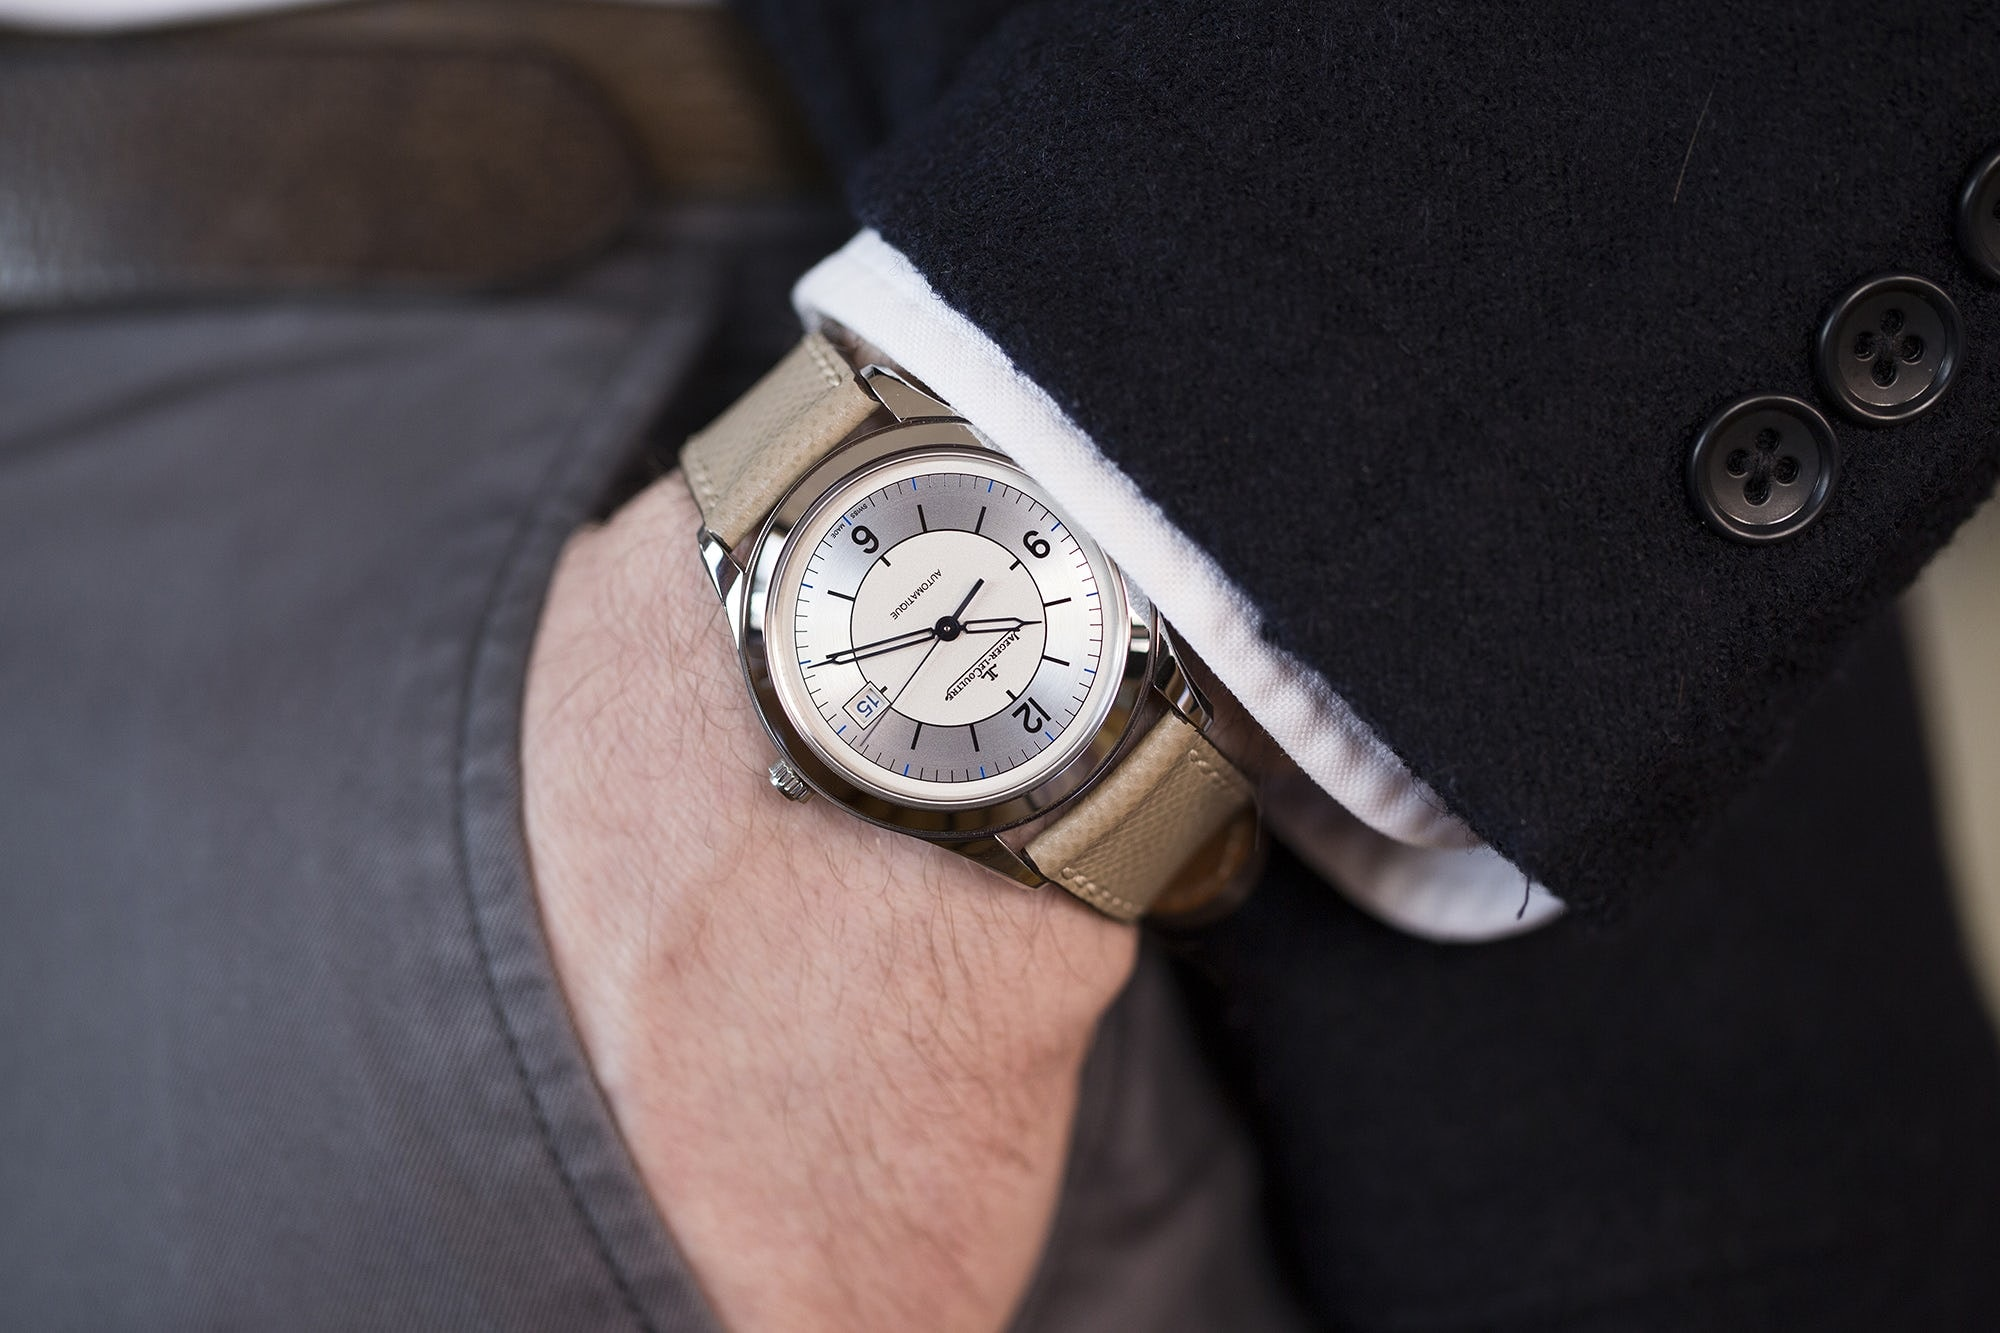 A Week On The Wrist: Ten Of The Biggest, Baddest HODINKEE Reviews Ever A Week On The Wrist: Ten Of The Biggest, Baddest HODINKEE Reviews Ever jlc